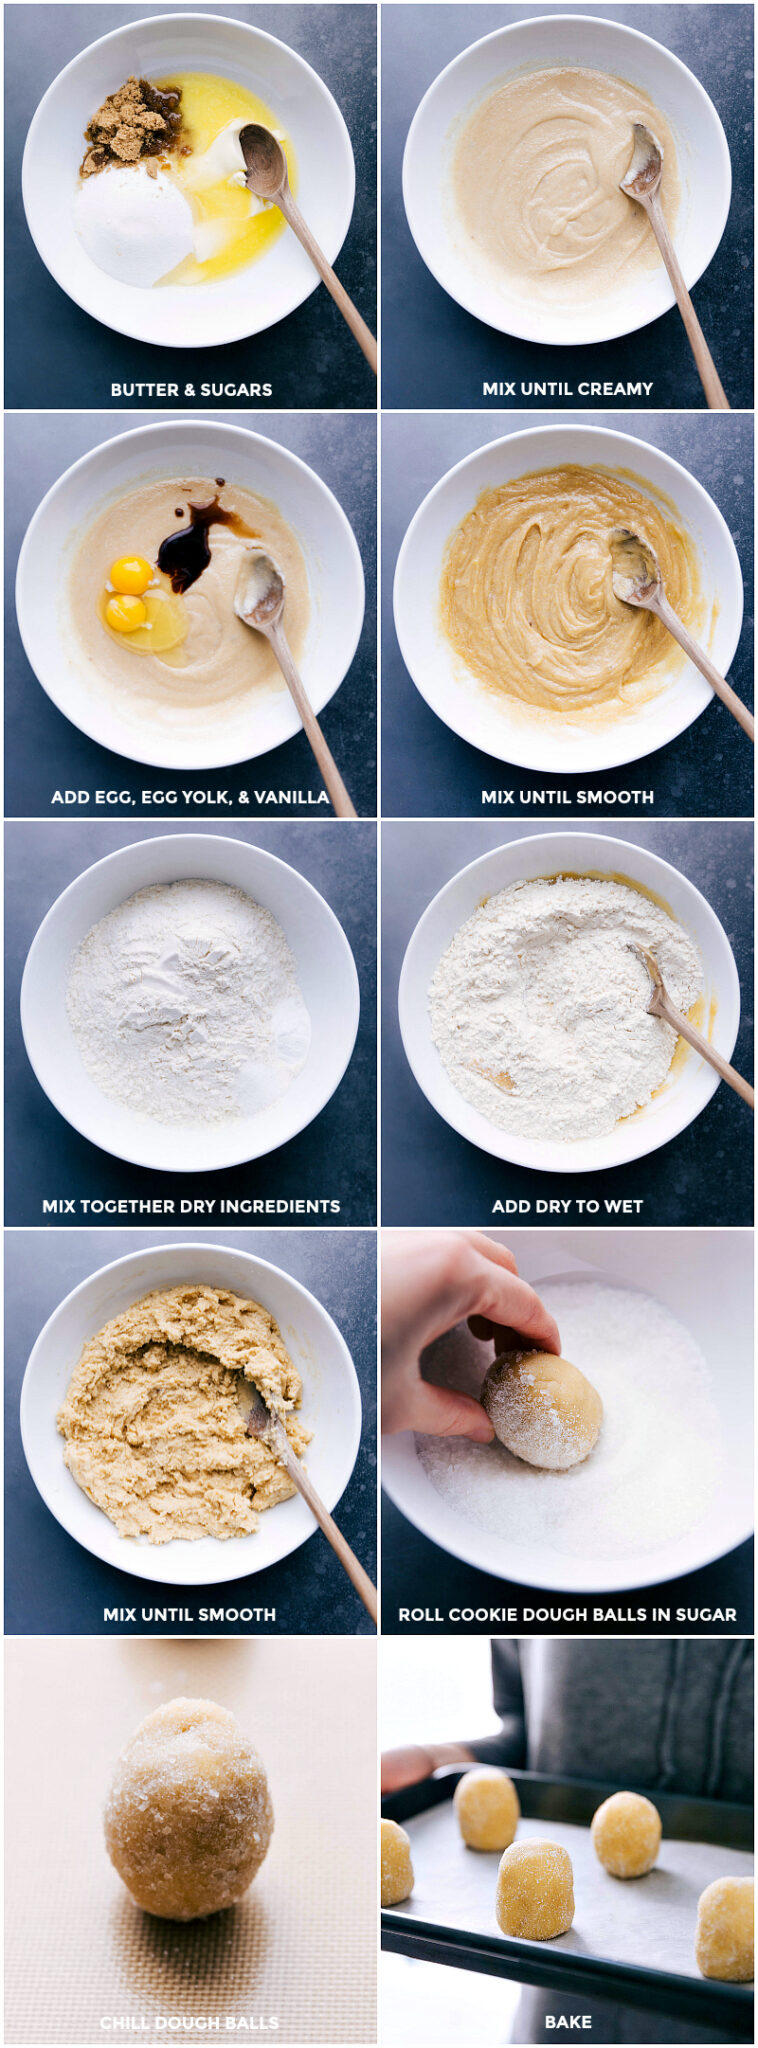 Process shots, making Soft Sugar Cookie dough: combine and mix butter and sugars; add eff, yolk and vanilla and mix until smooth; mix dry ingredients and add to wet ingredients; mix until smooth; roll cookie dough balls in sugar; chill dough balls; bake.